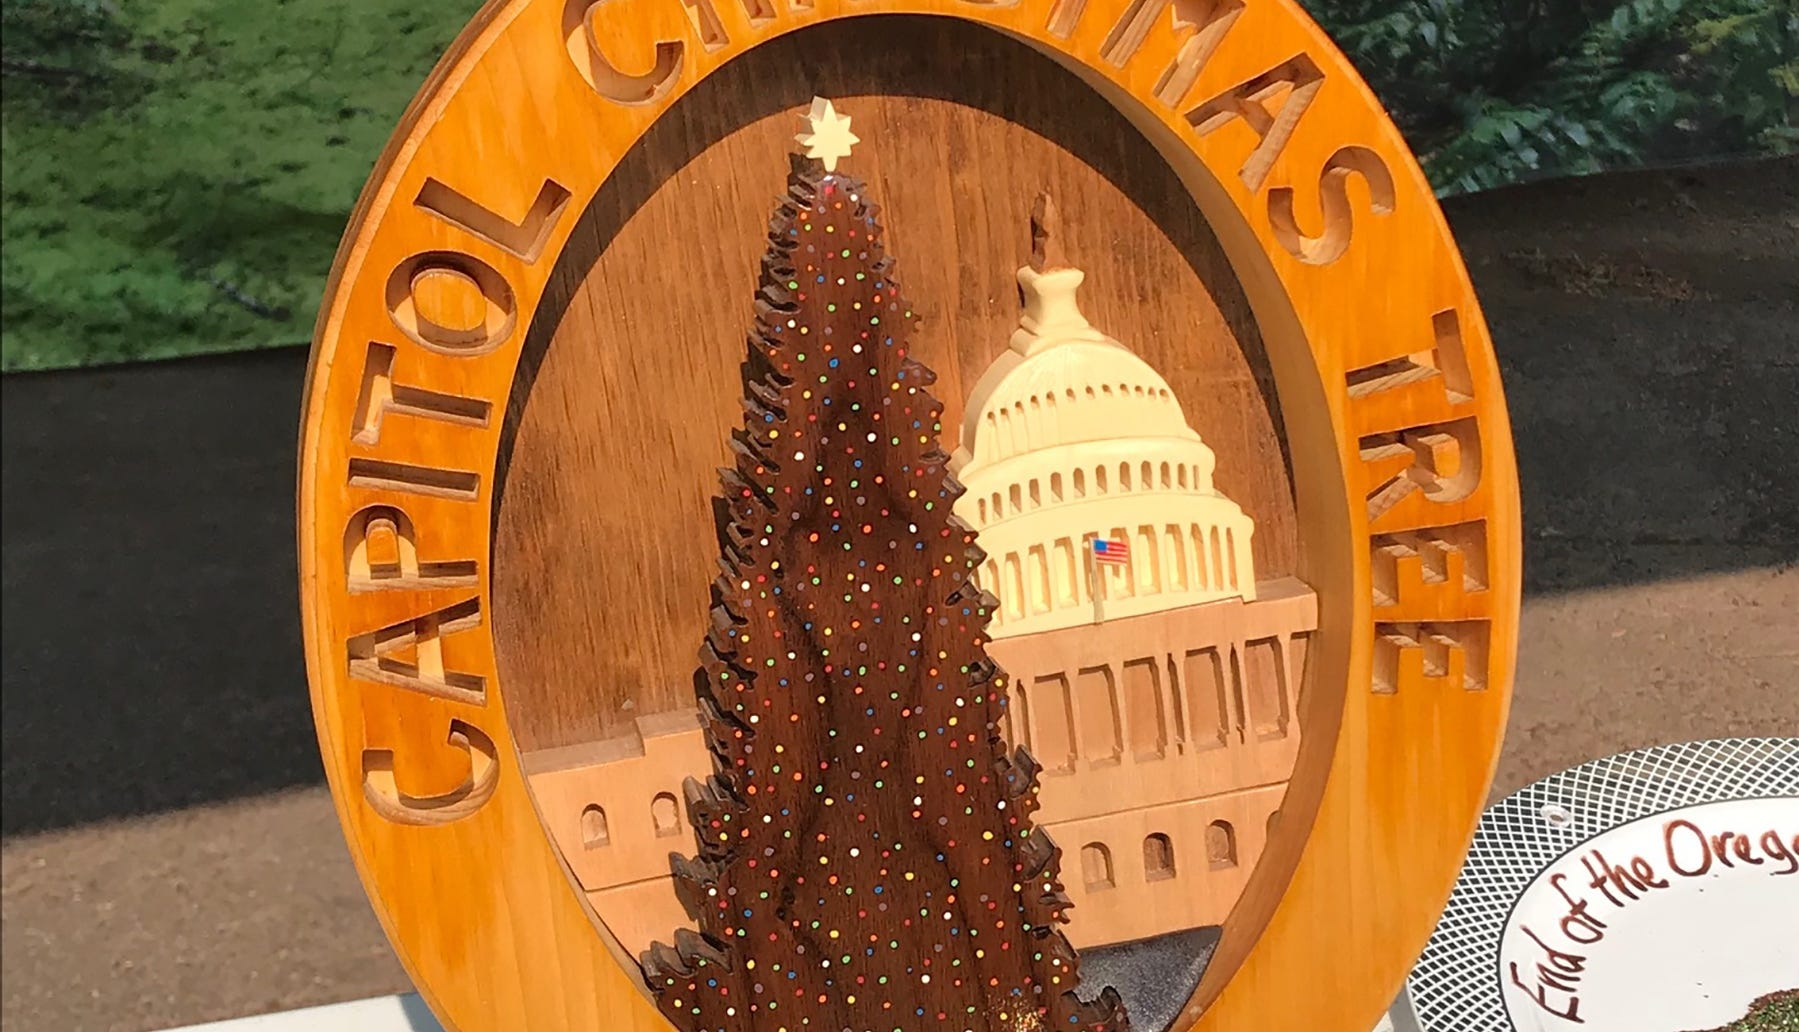 The U.S. Capitol Christmas Tree has been found in an Oregon forest, but it's a secret